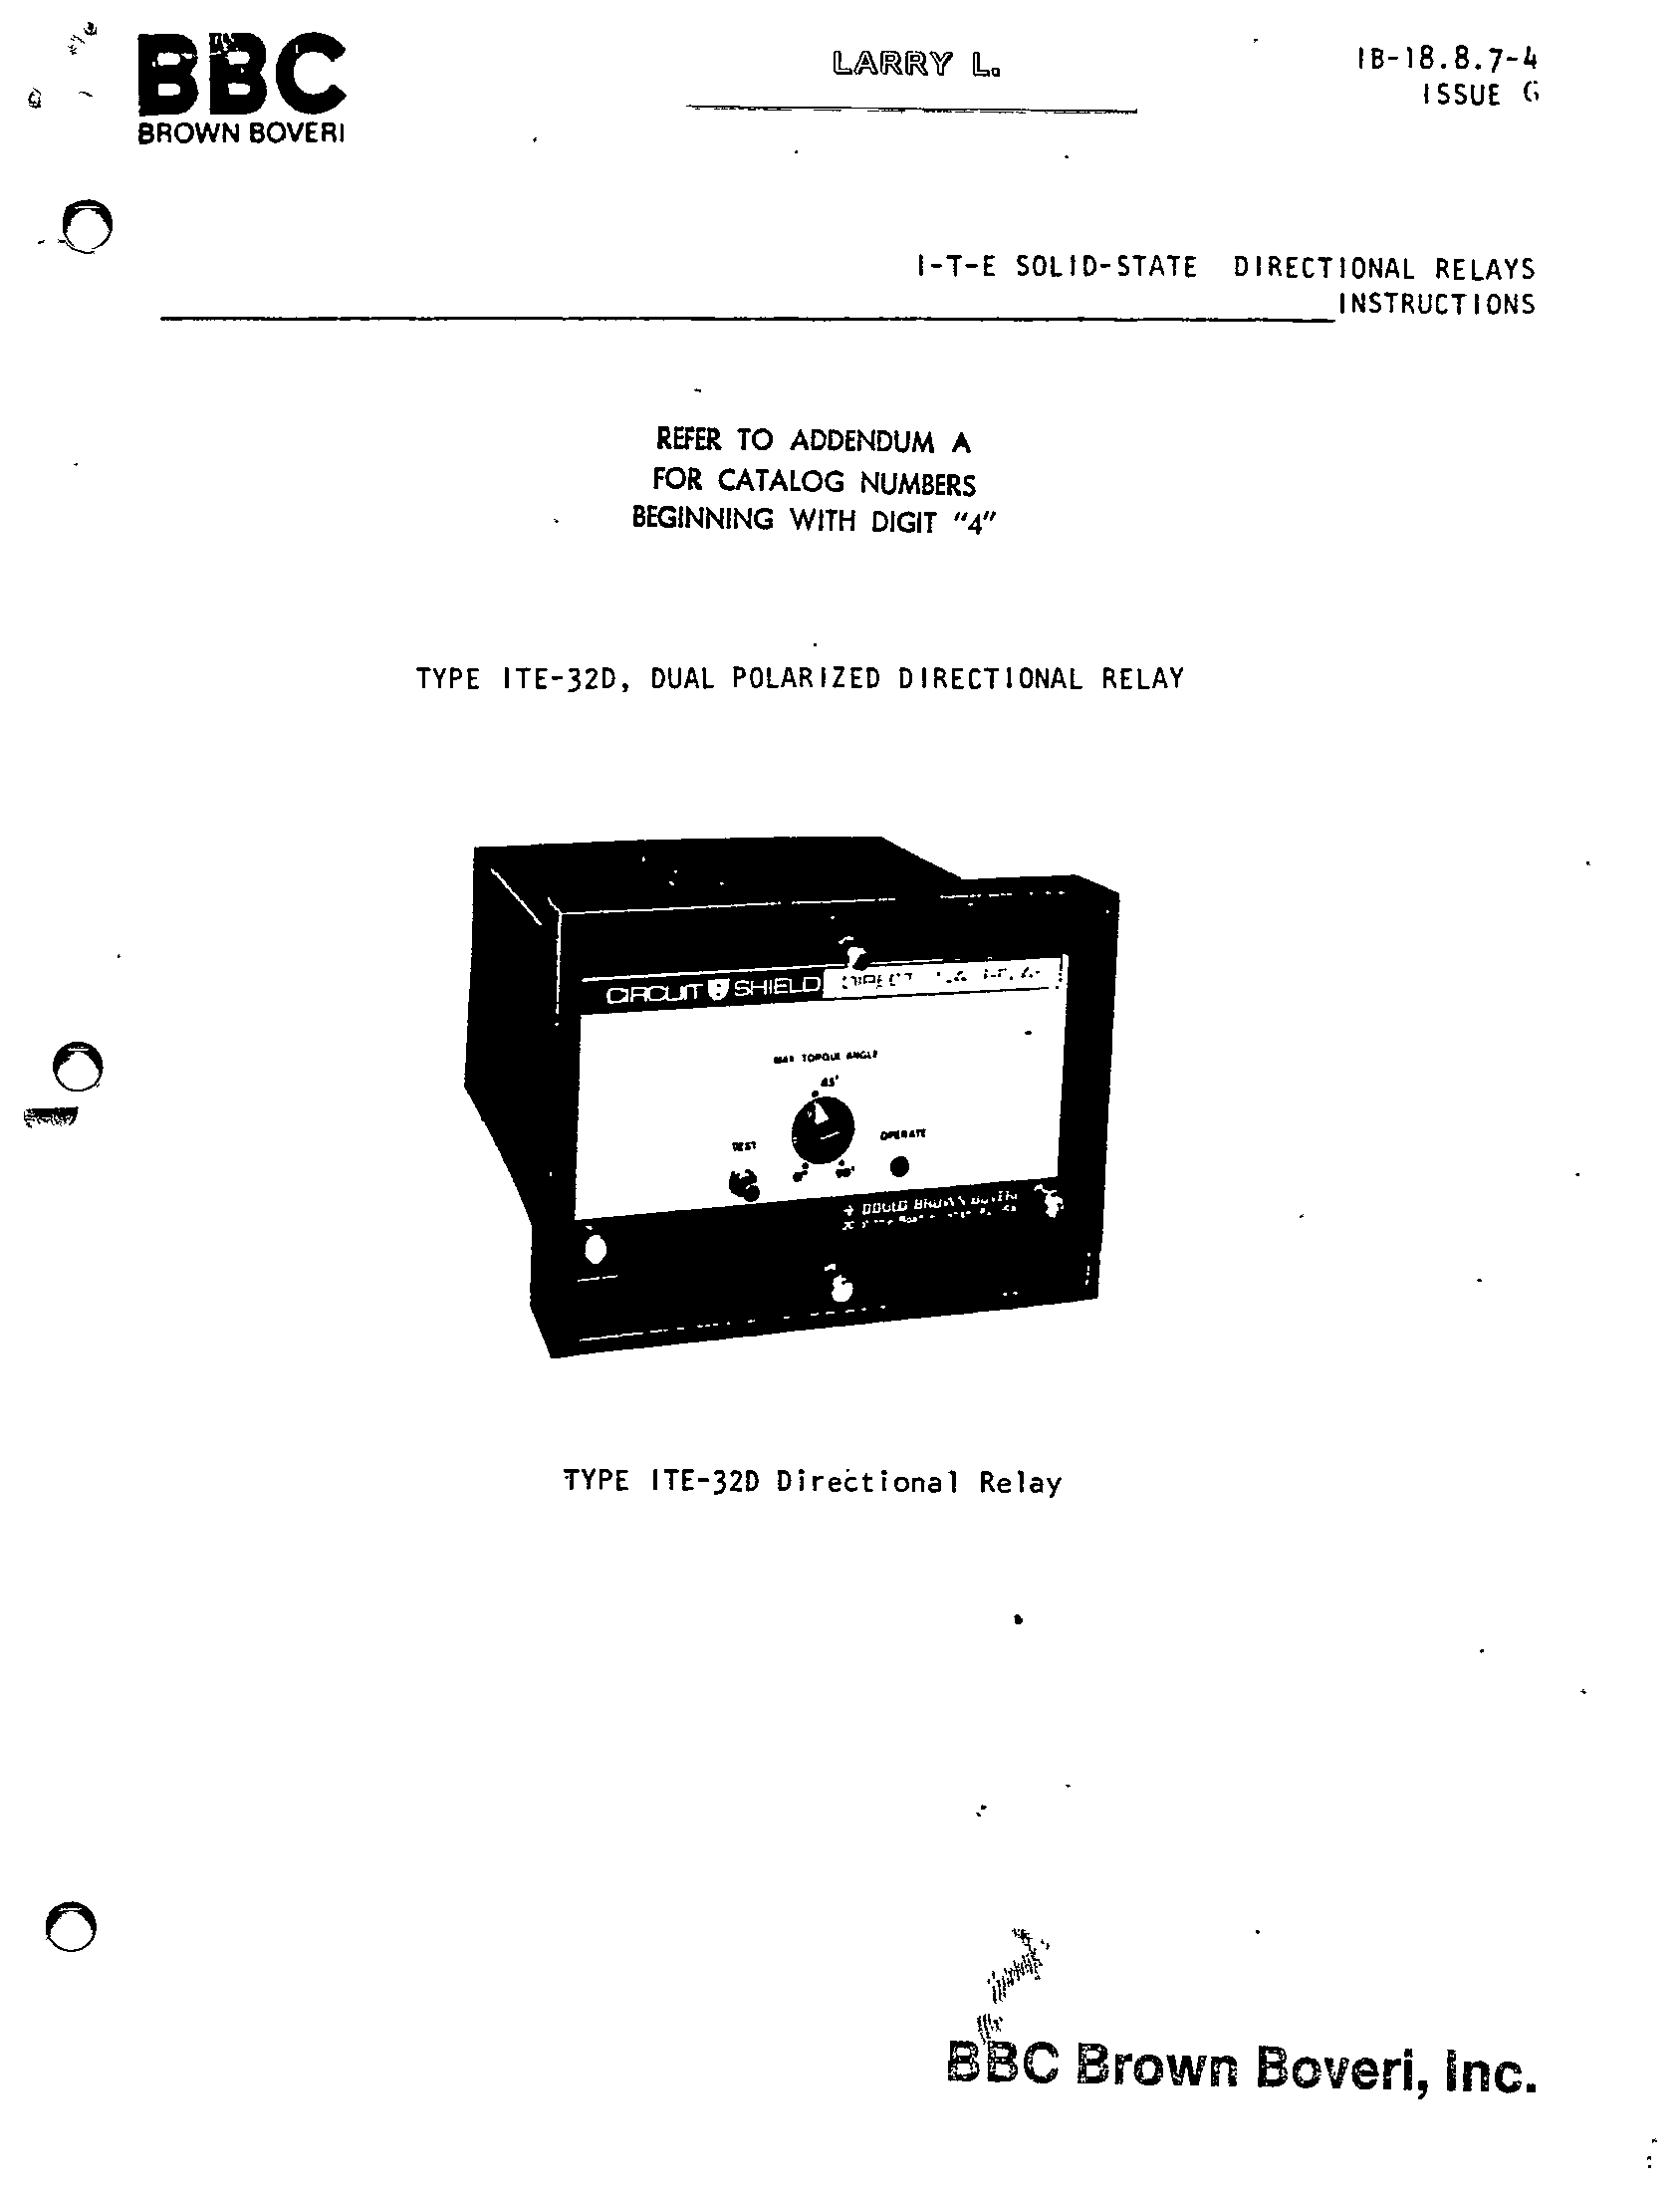 TYPE ITE-32D, DUAL POLARIZED DIRECTIONAL RELAY MANUAL